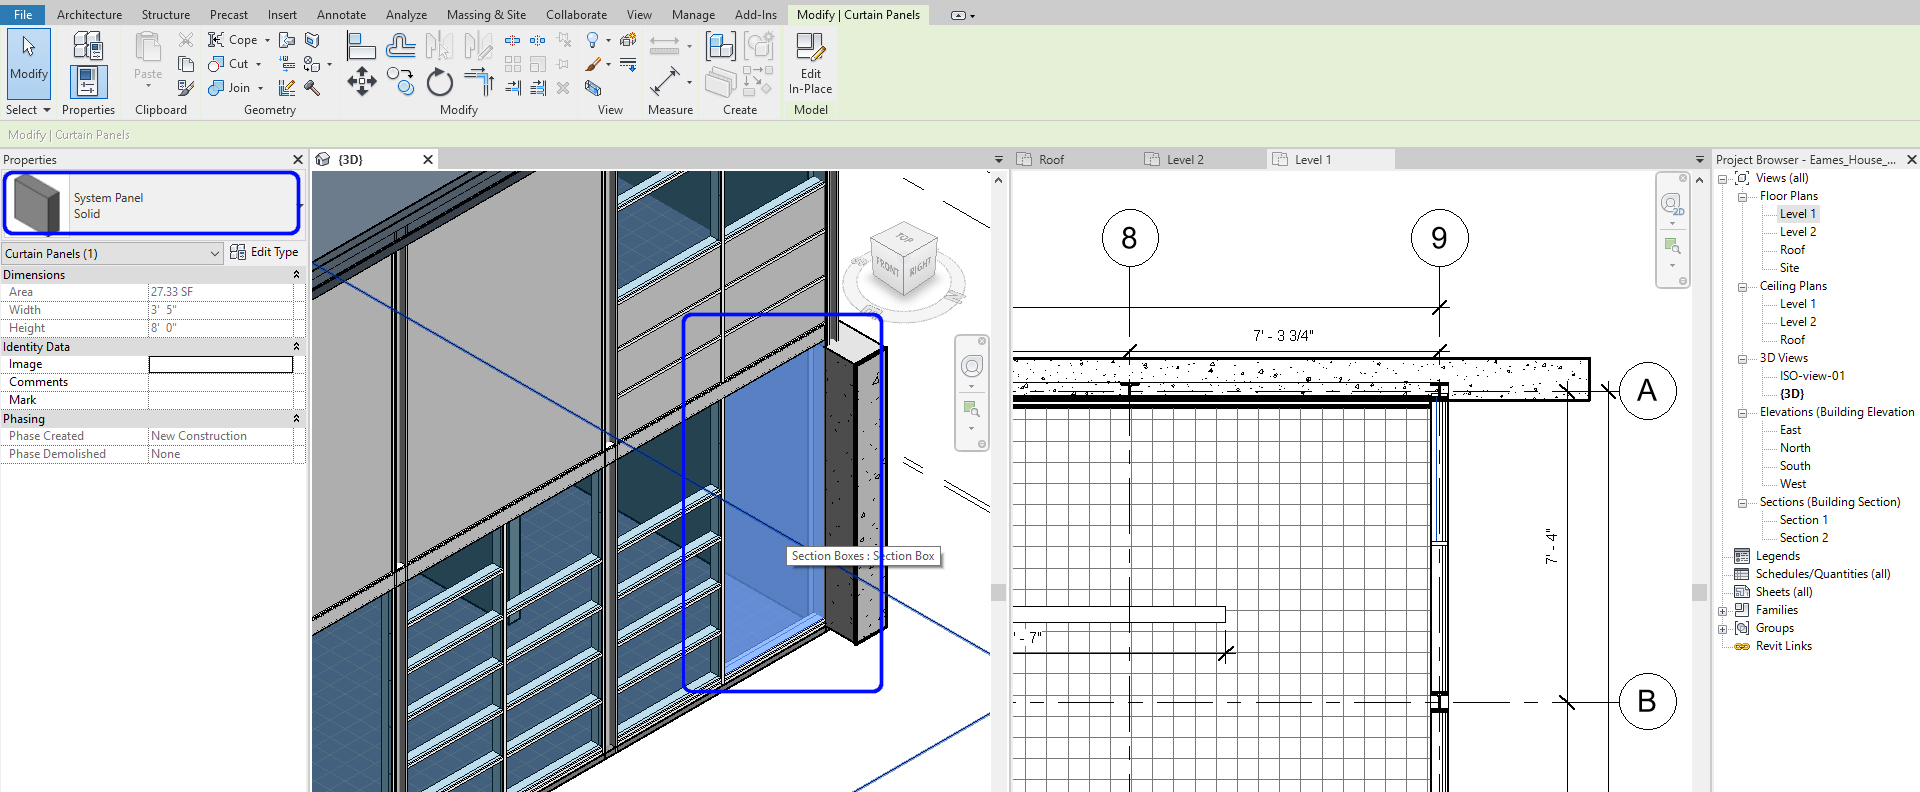 It indicates how to select a door panel on the curtain wall.